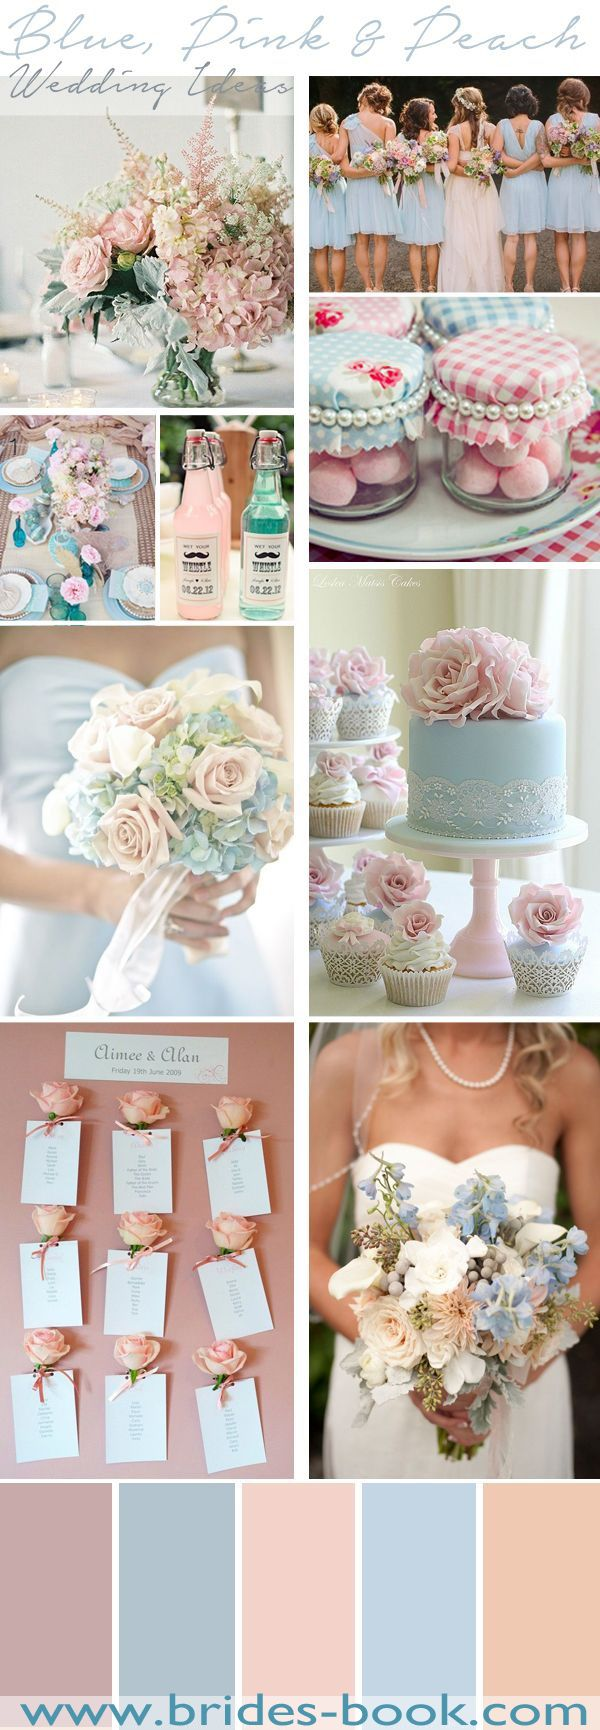 Blue, Pink & Peach Wedding Inspiration